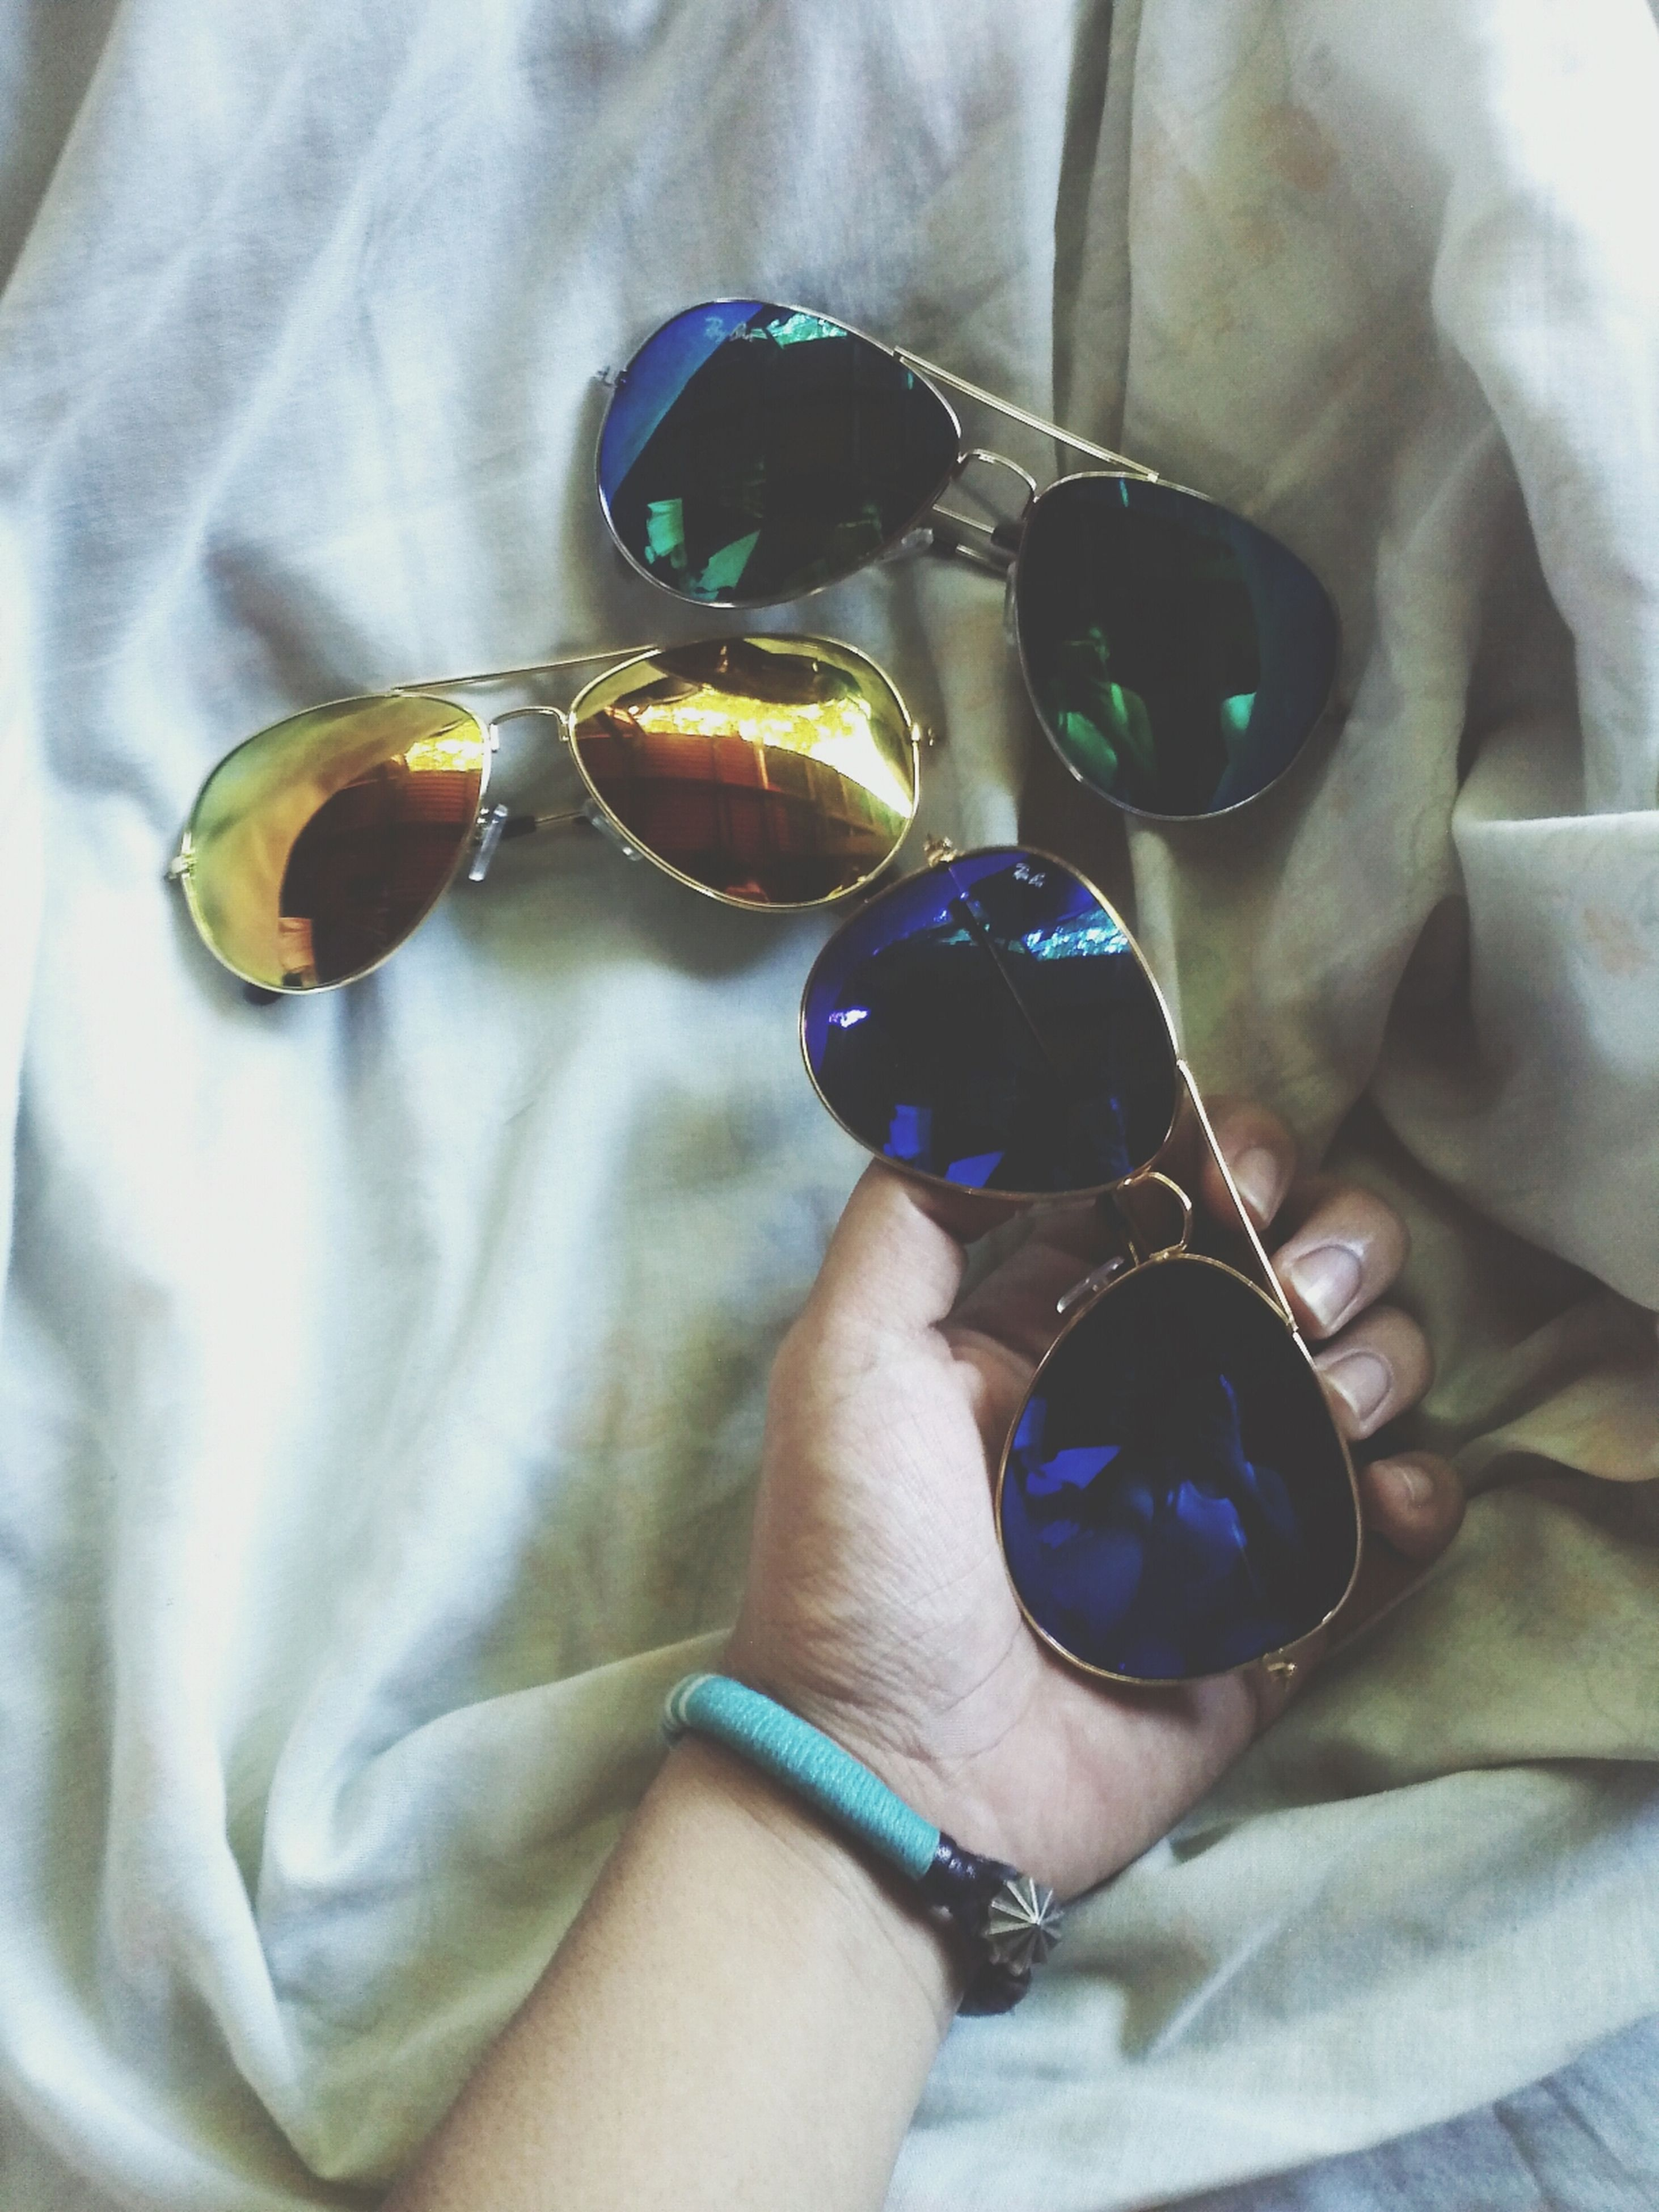 indoors, lifestyles, person, leisure activity, holding, part of, fashion, close-up, unrecognizable person, jewelry, high angle view, sunglasses, personal perspective, men, human finger, cropped